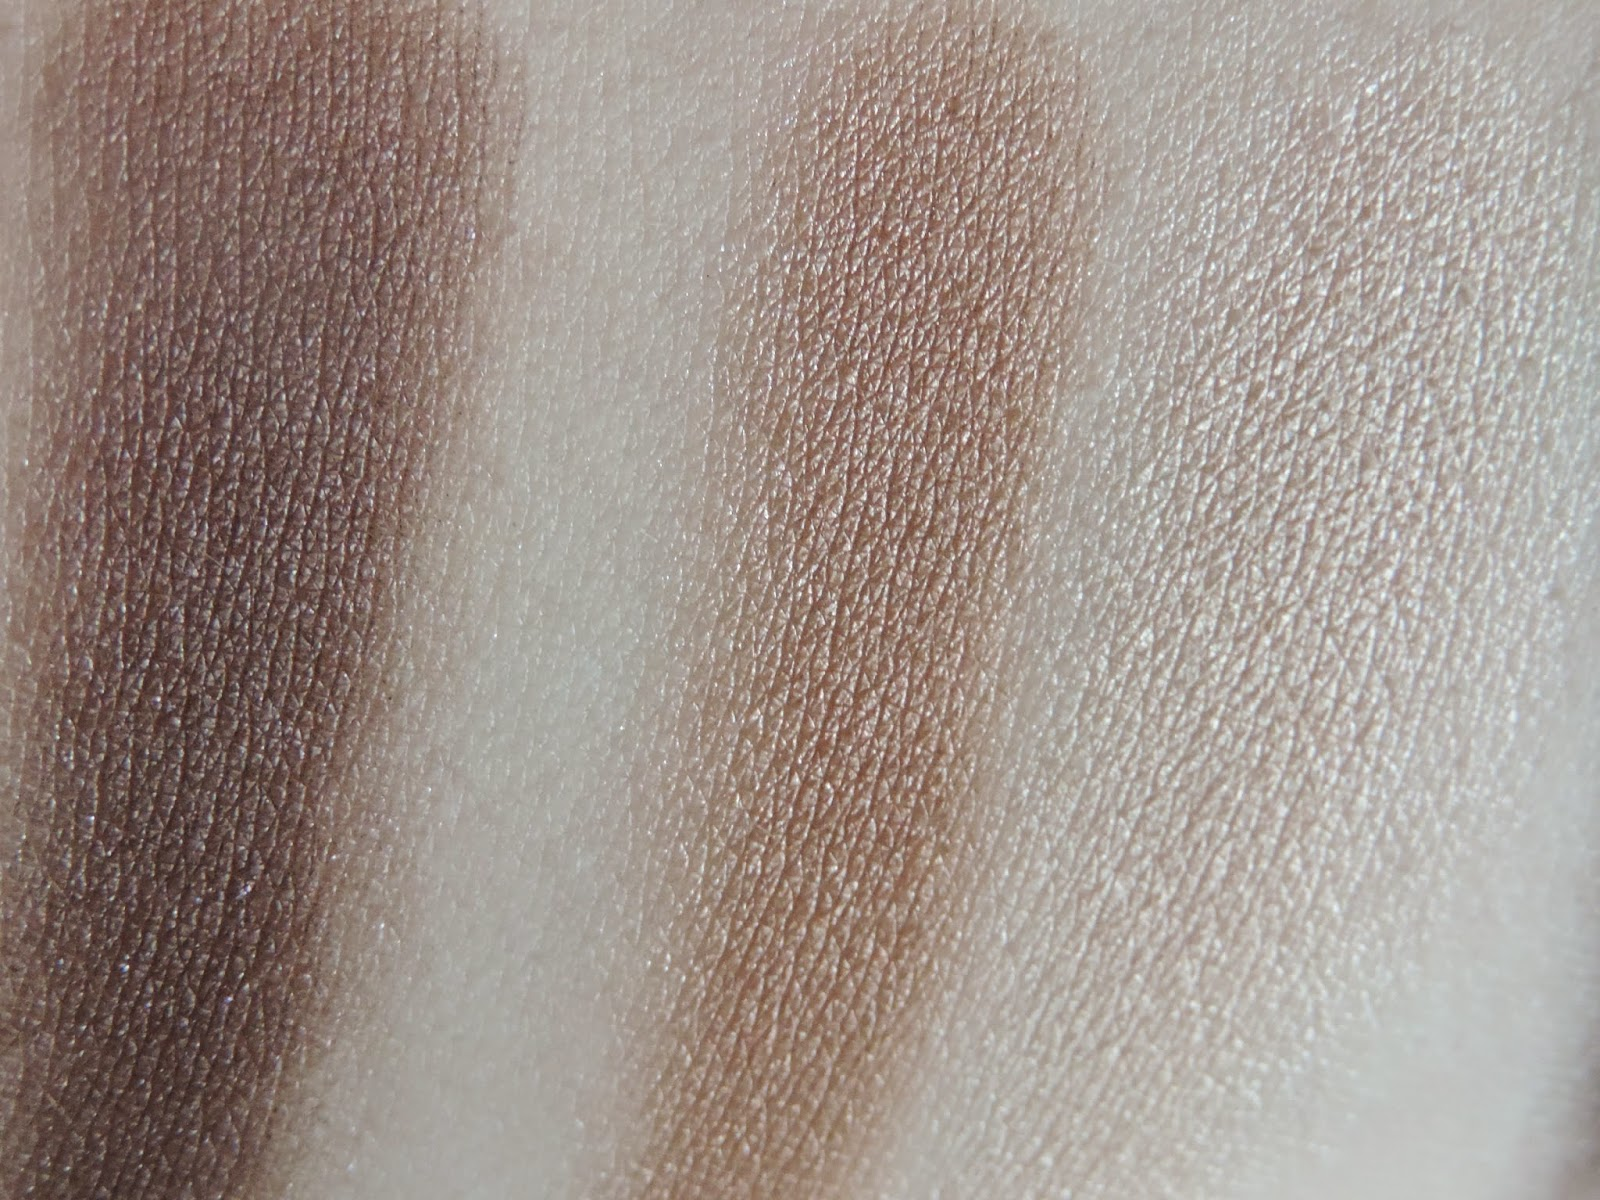 Swatches From Left: Shade 1, Shade 3, Shade 2